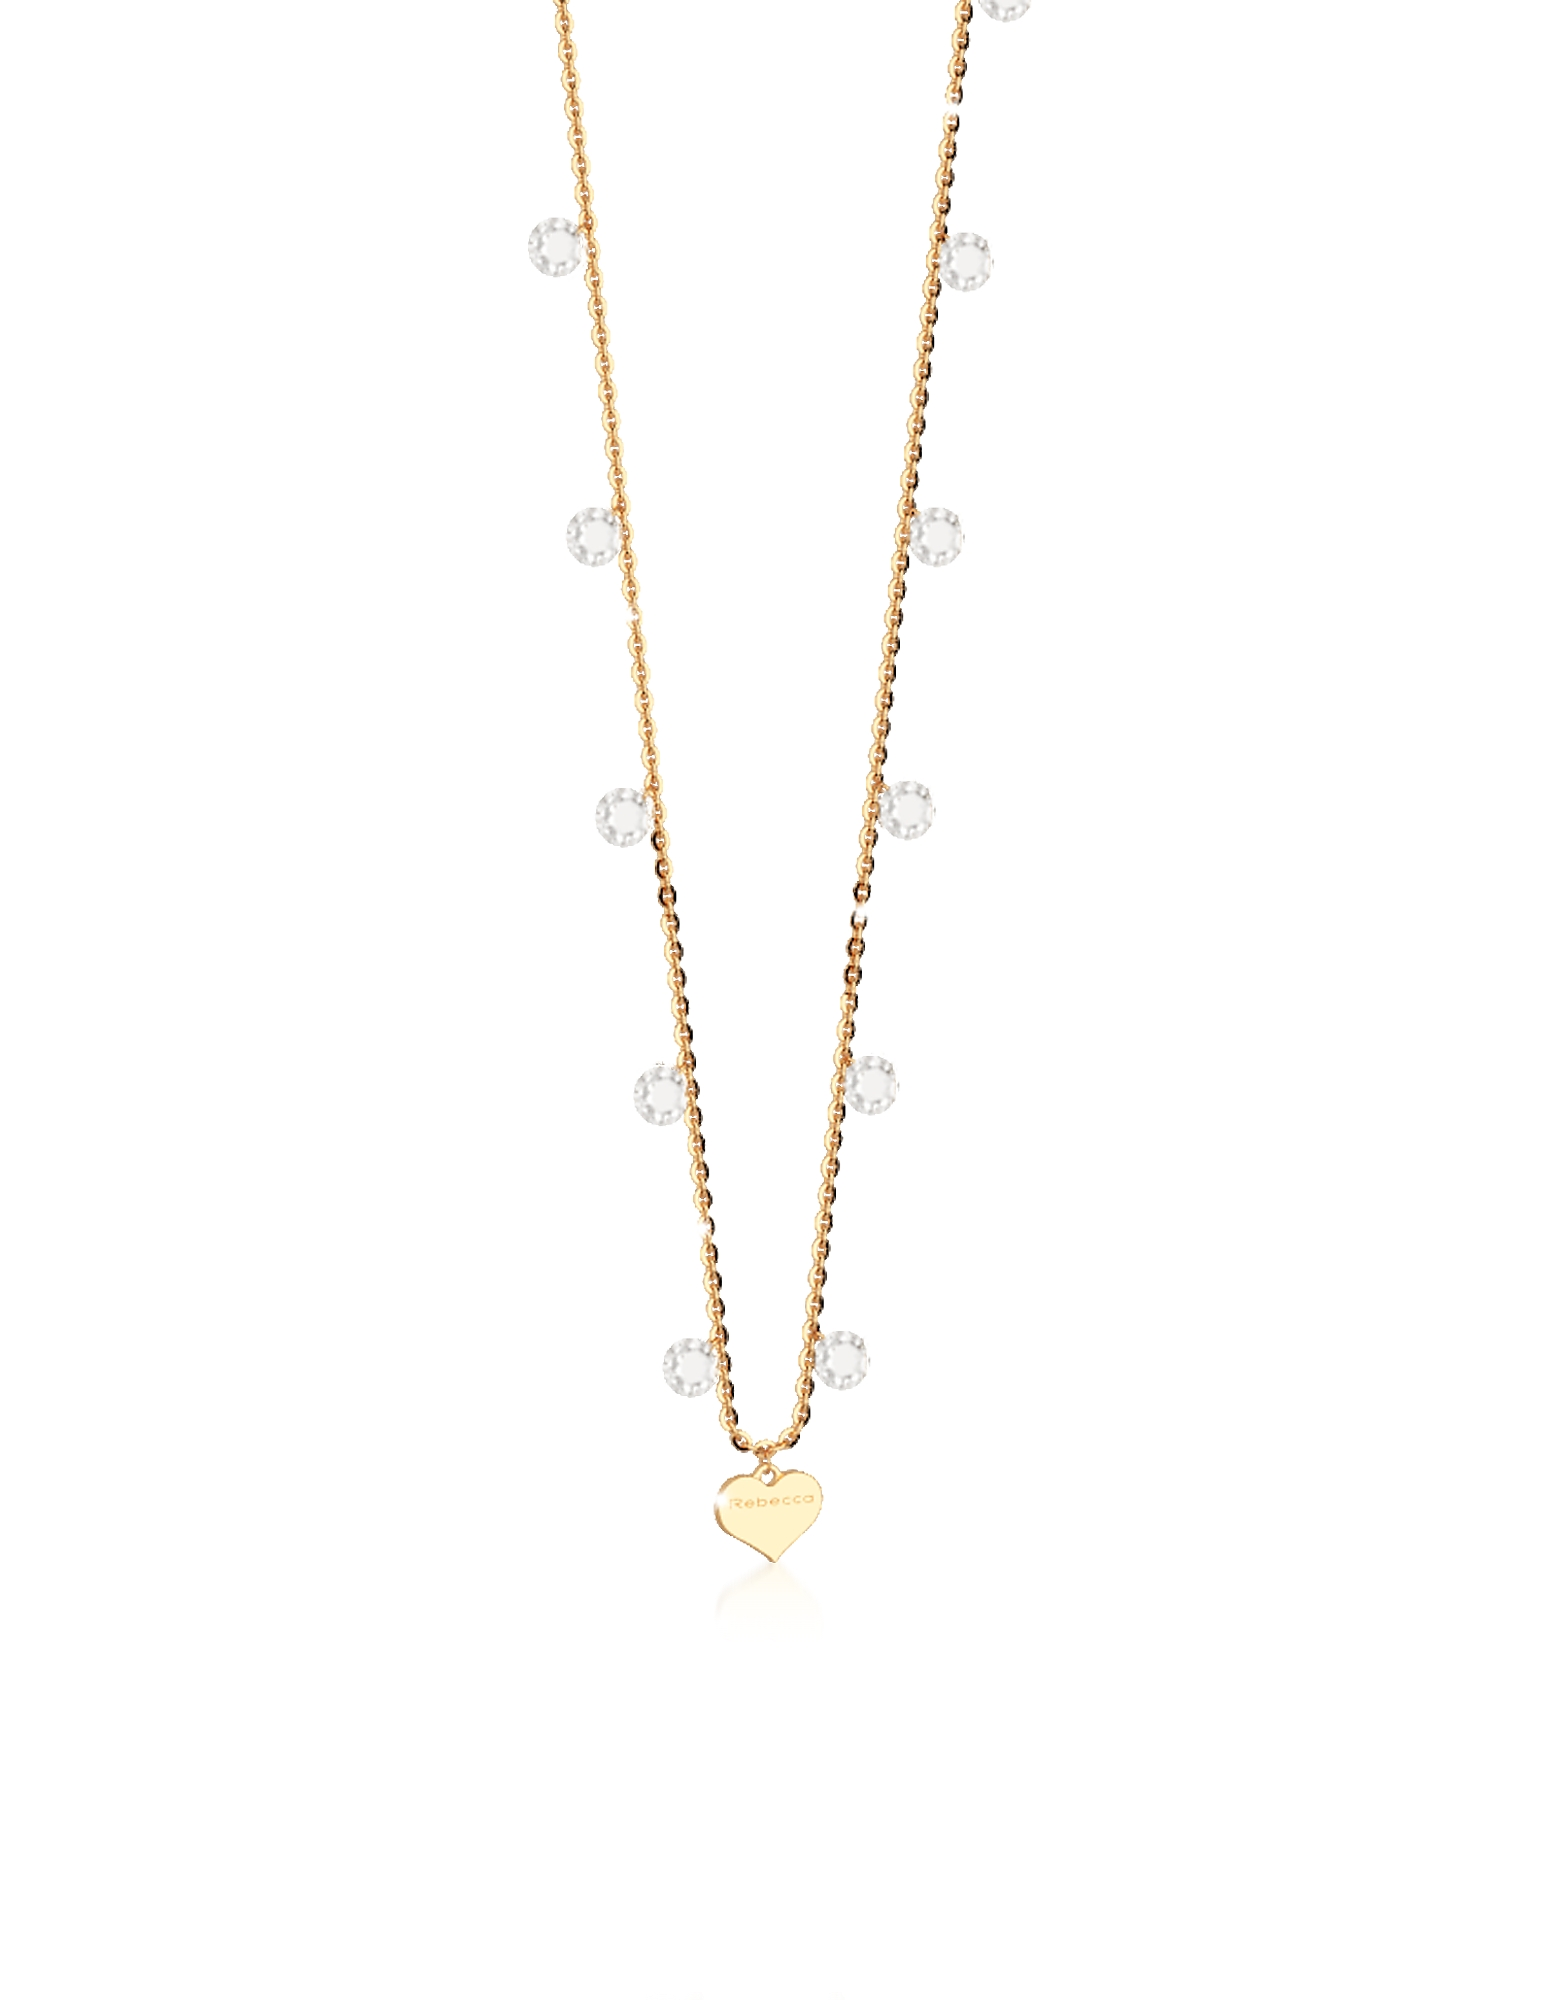 Rebecca Necklaces, Lucciole Sterling Silver Gold Plated Necklace w/Crystals